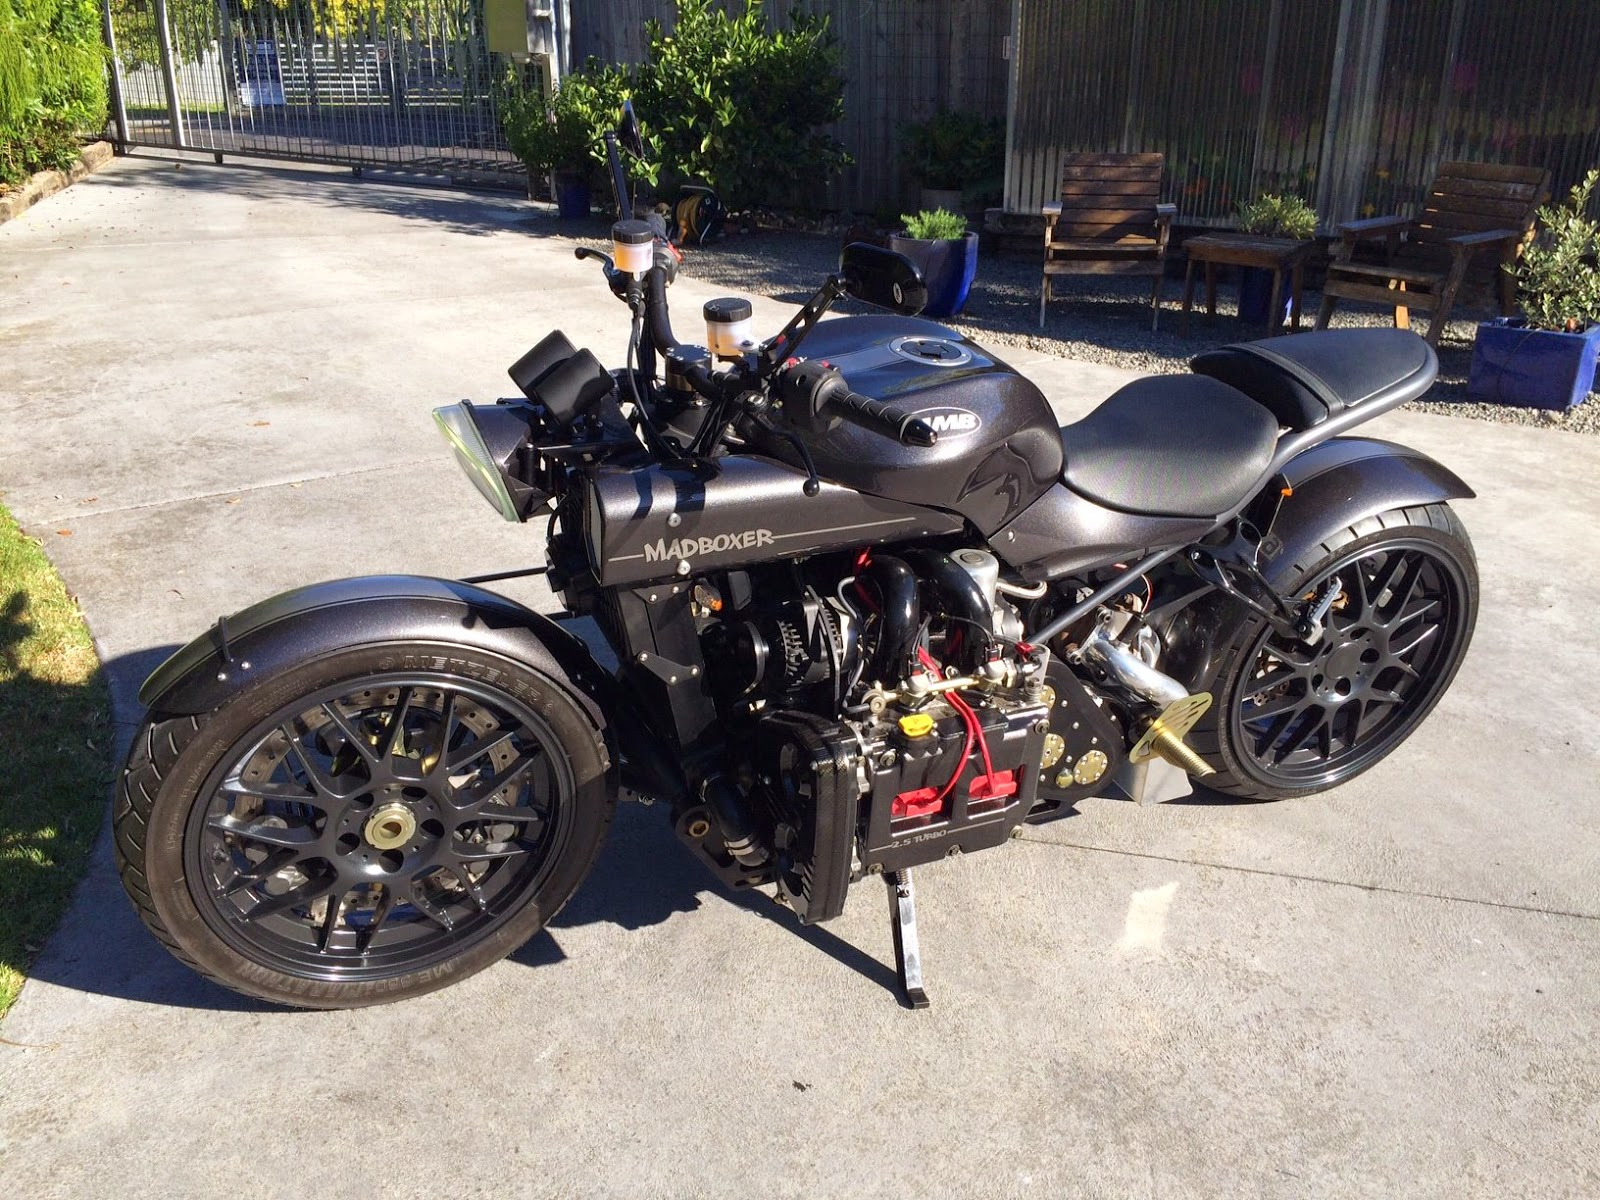 Custom Motorcycle With A Subaru Turbo Flat Four Engine Swap Depot Wiring Harness So When Friend Showed Him The Kickboxer Concept By Ian Mcelroy He Knew Had To Build It